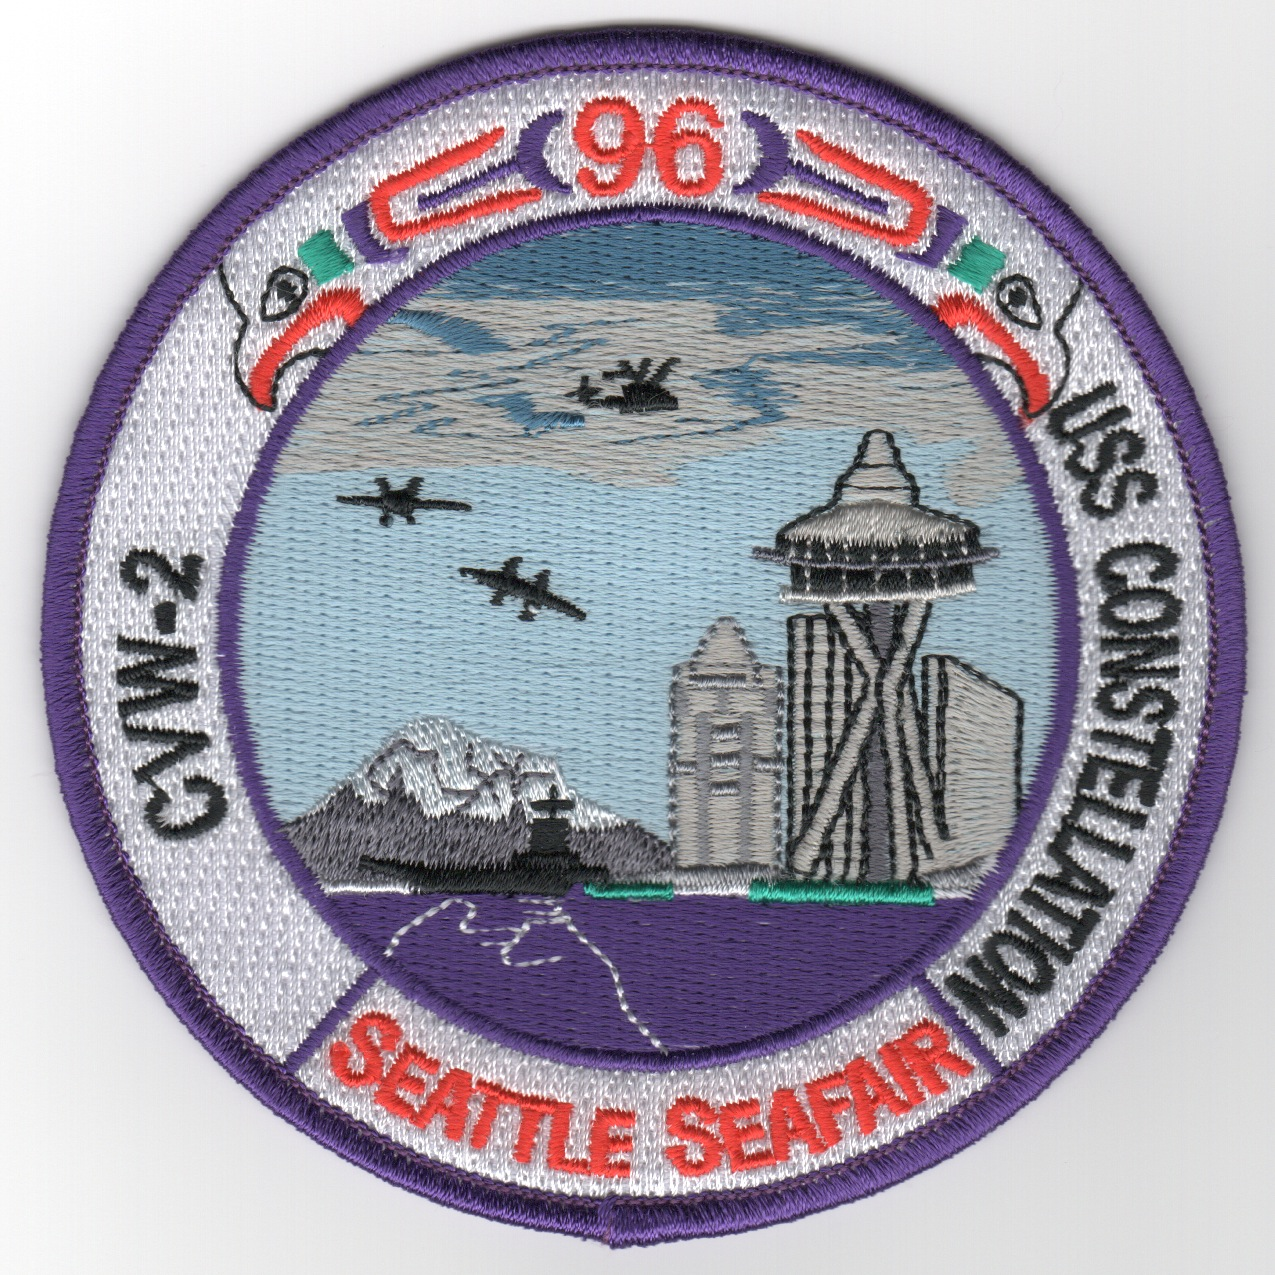 CV-64/CVW-2 1996 'Seattle Seafair' Patch